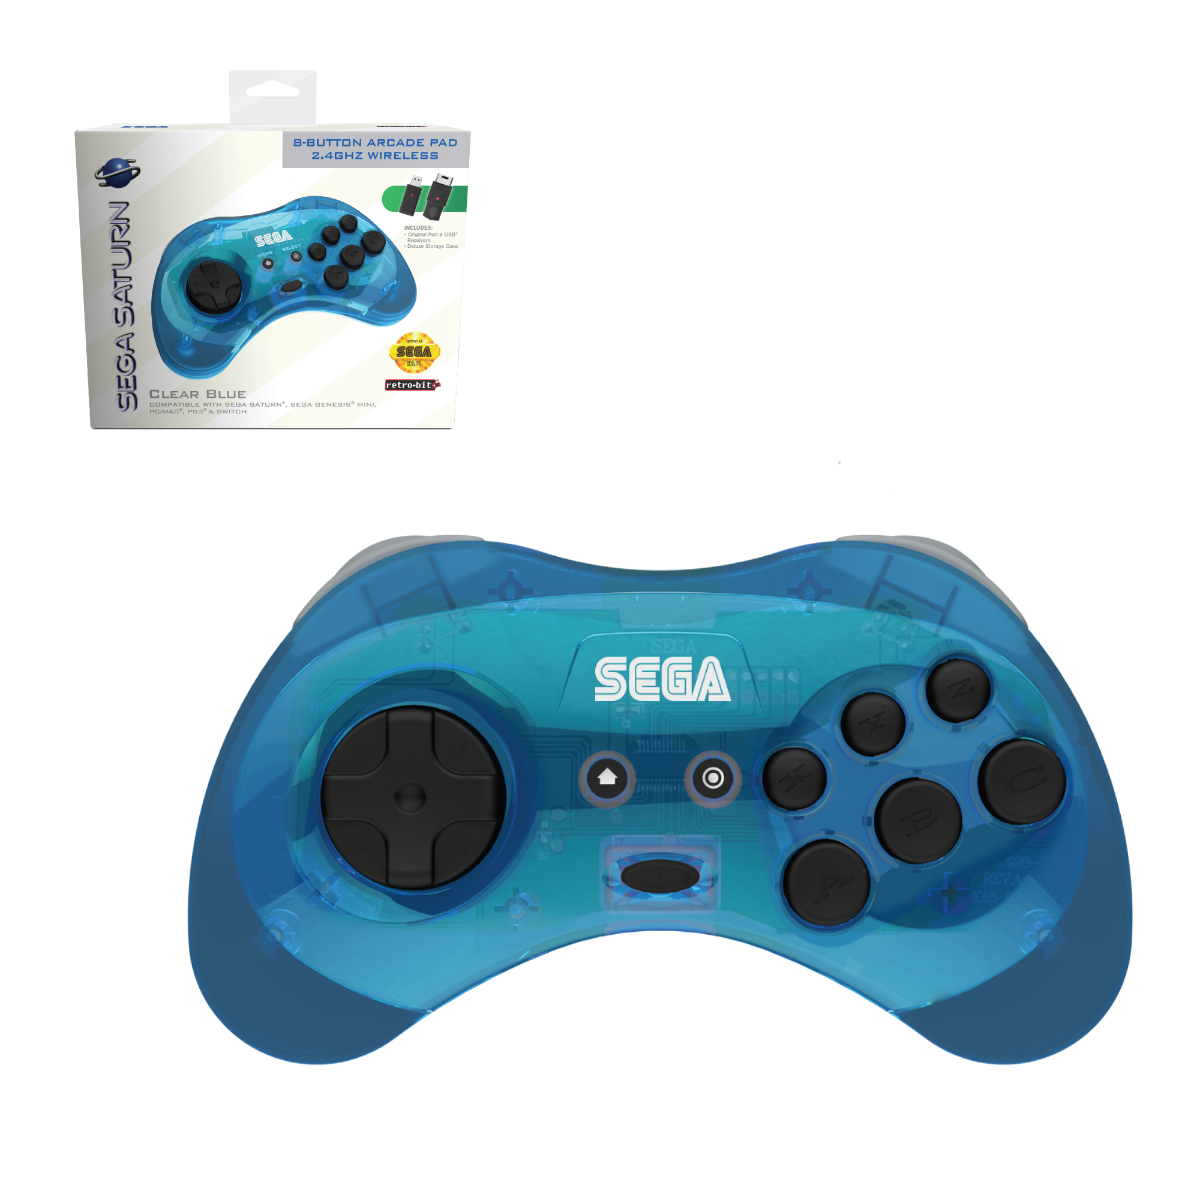 SEGA, Saturn, 8-Button, Arcade Pad, Controller, 2.4 GHz Wireless, USB, PC, Mac, PS3, Android, Genesis Mini, Switch, Clear Blue